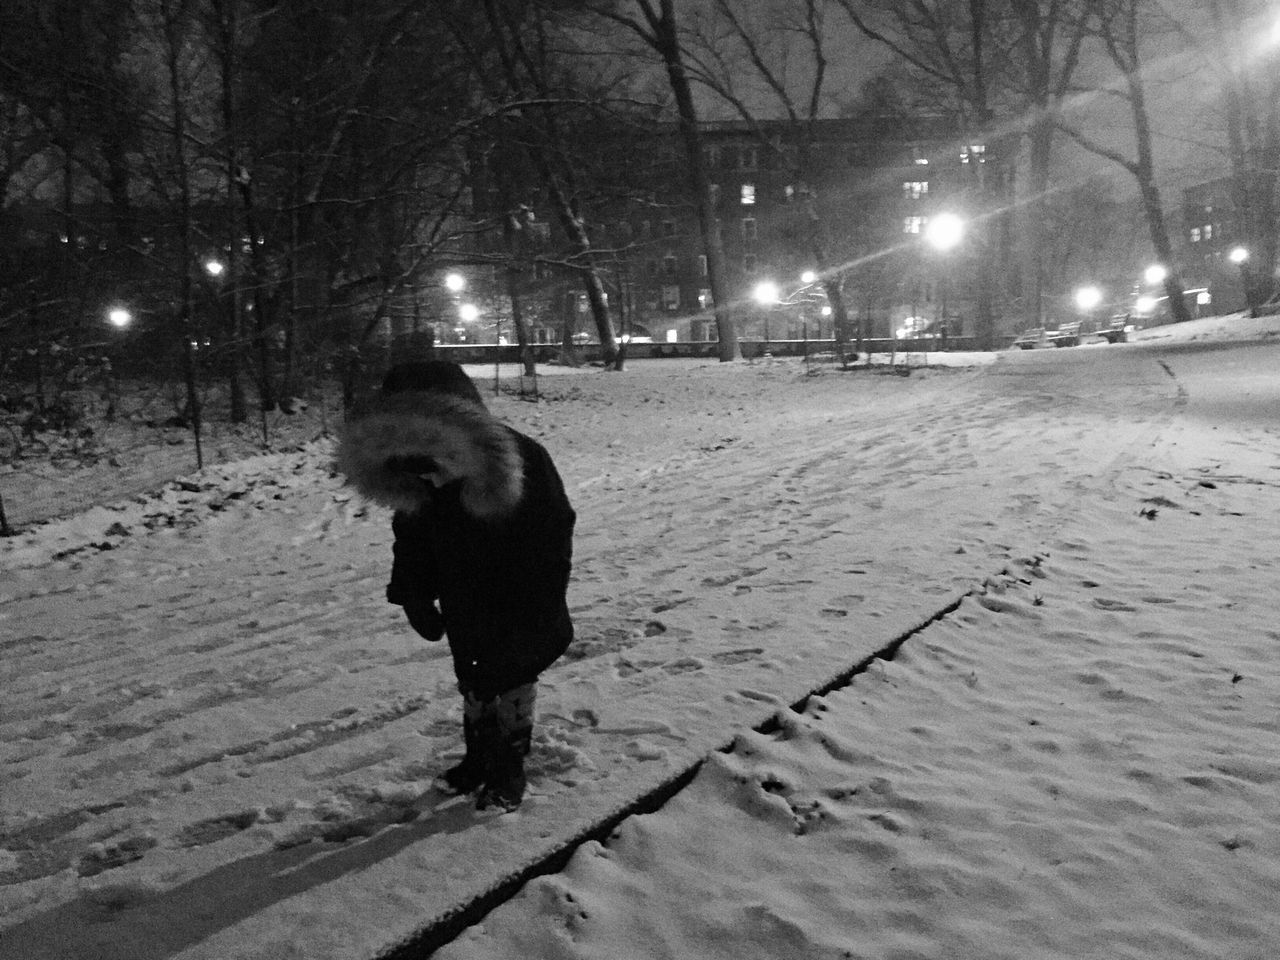 Pondering snow shadow. Snow ❄ Winter Wonderland Brooklyn Prospect Park